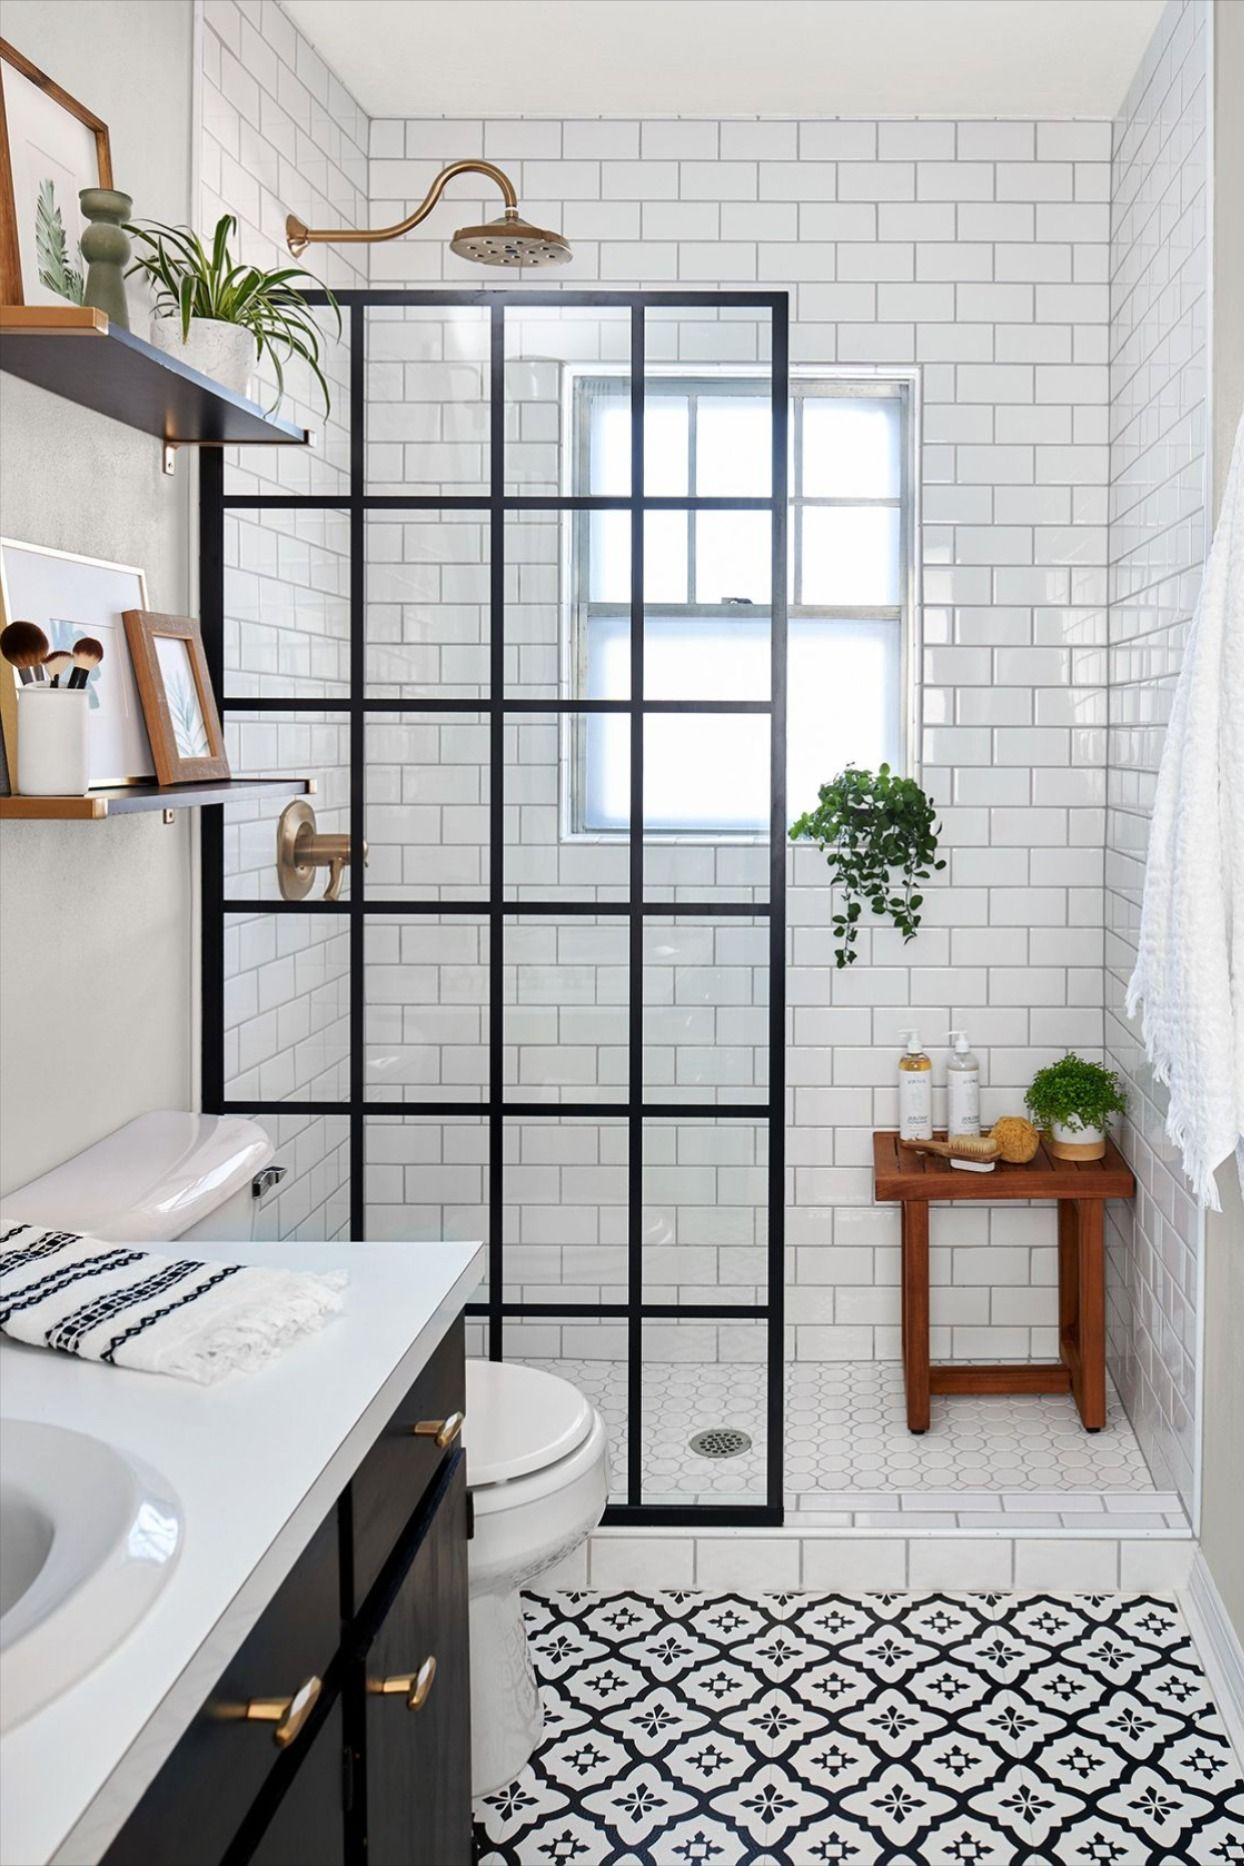 visit my website to see more about Small Bathroom Storage Ideas... #bathroom #bathroomideas #bathroomdecor #bathroomdesign #bathroomstorage